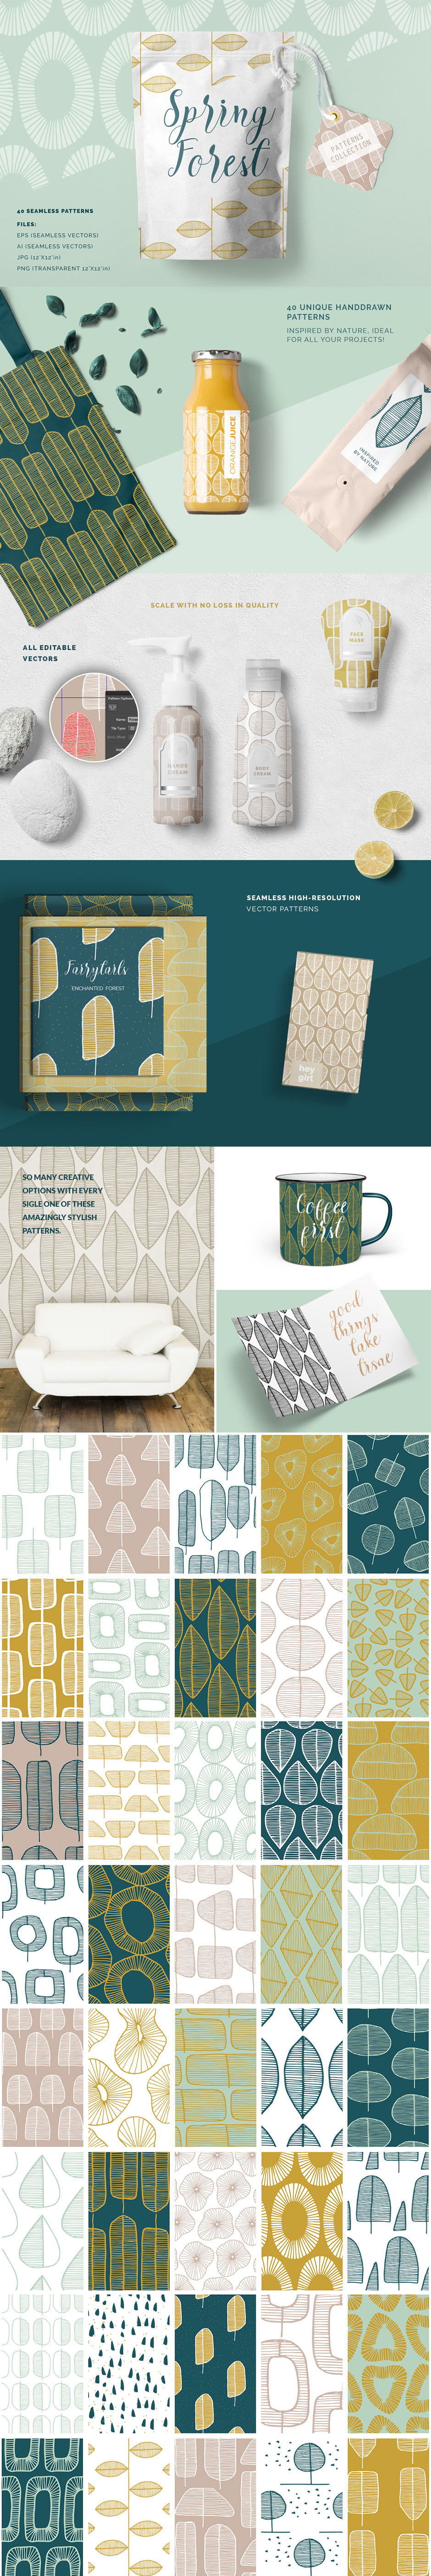 The Comprehensive Texture and Patterns Collection